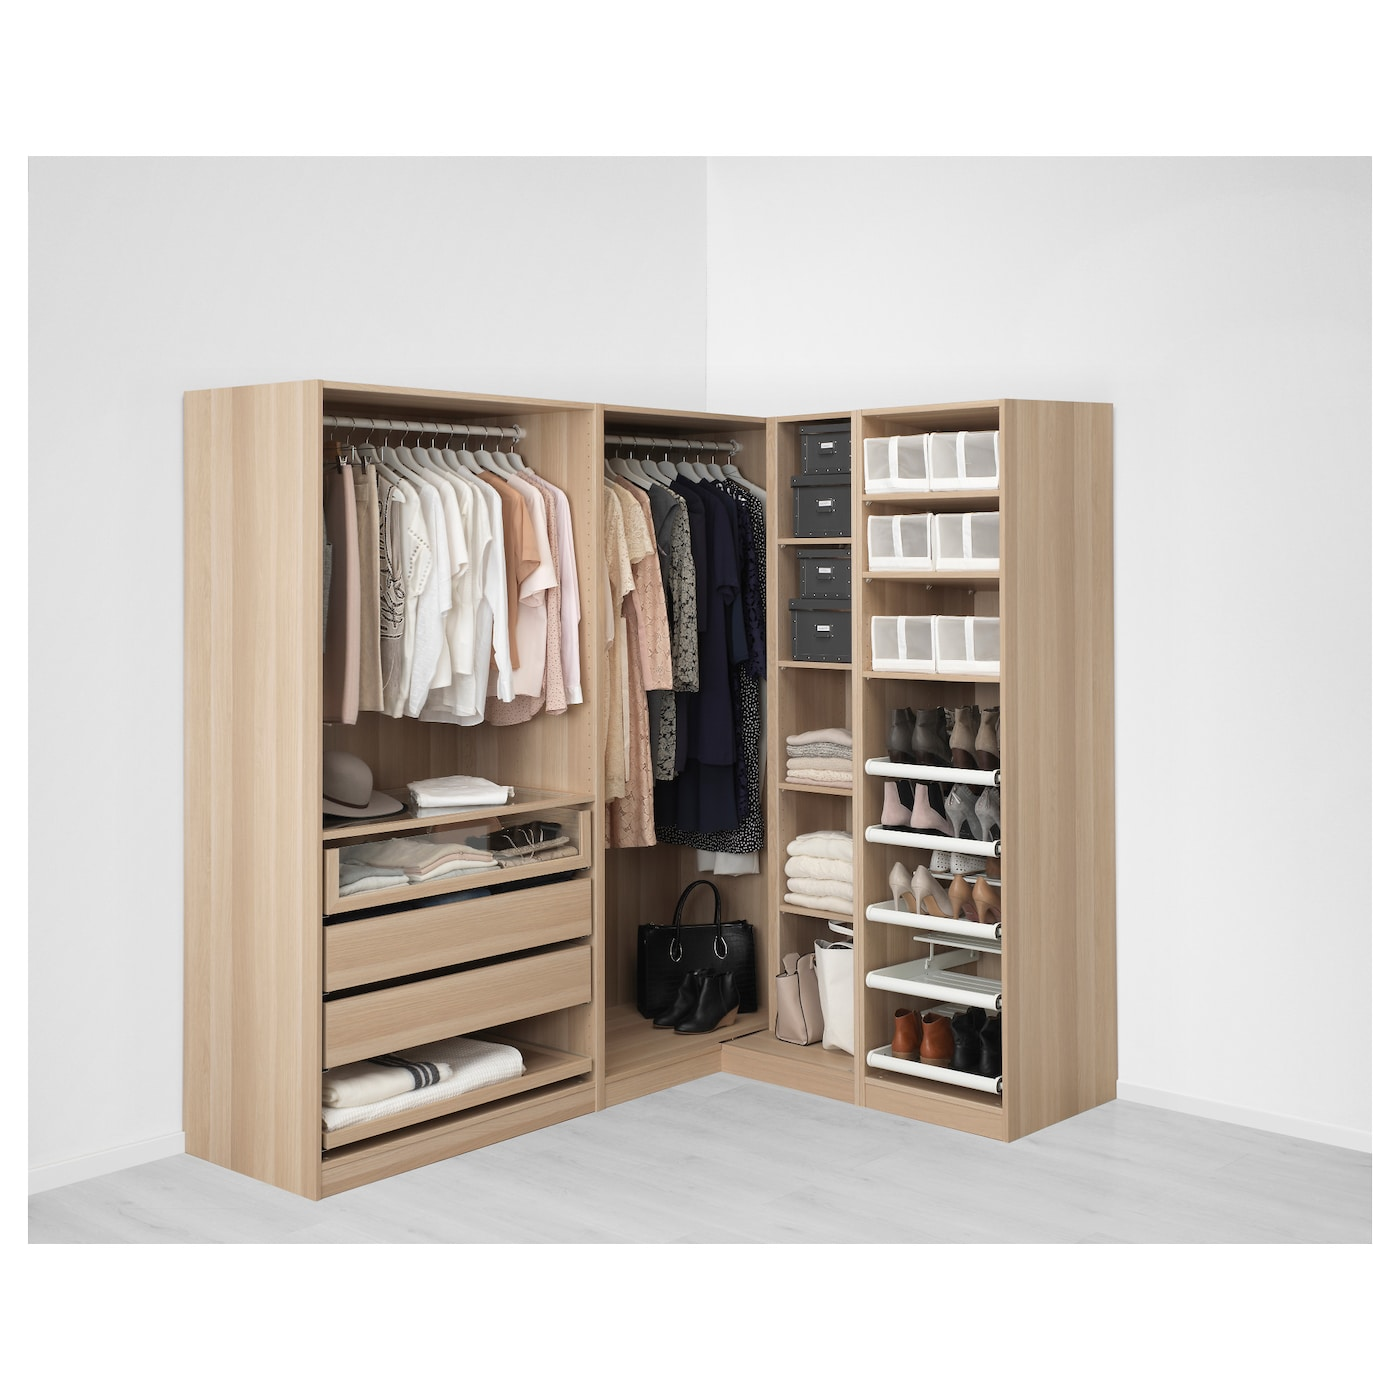 pax corner wardrobe white stained oak effect nexus vikedal 210 160 x 201 cm ikea. Black Bedroom Furniture Sets. Home Design Ideas